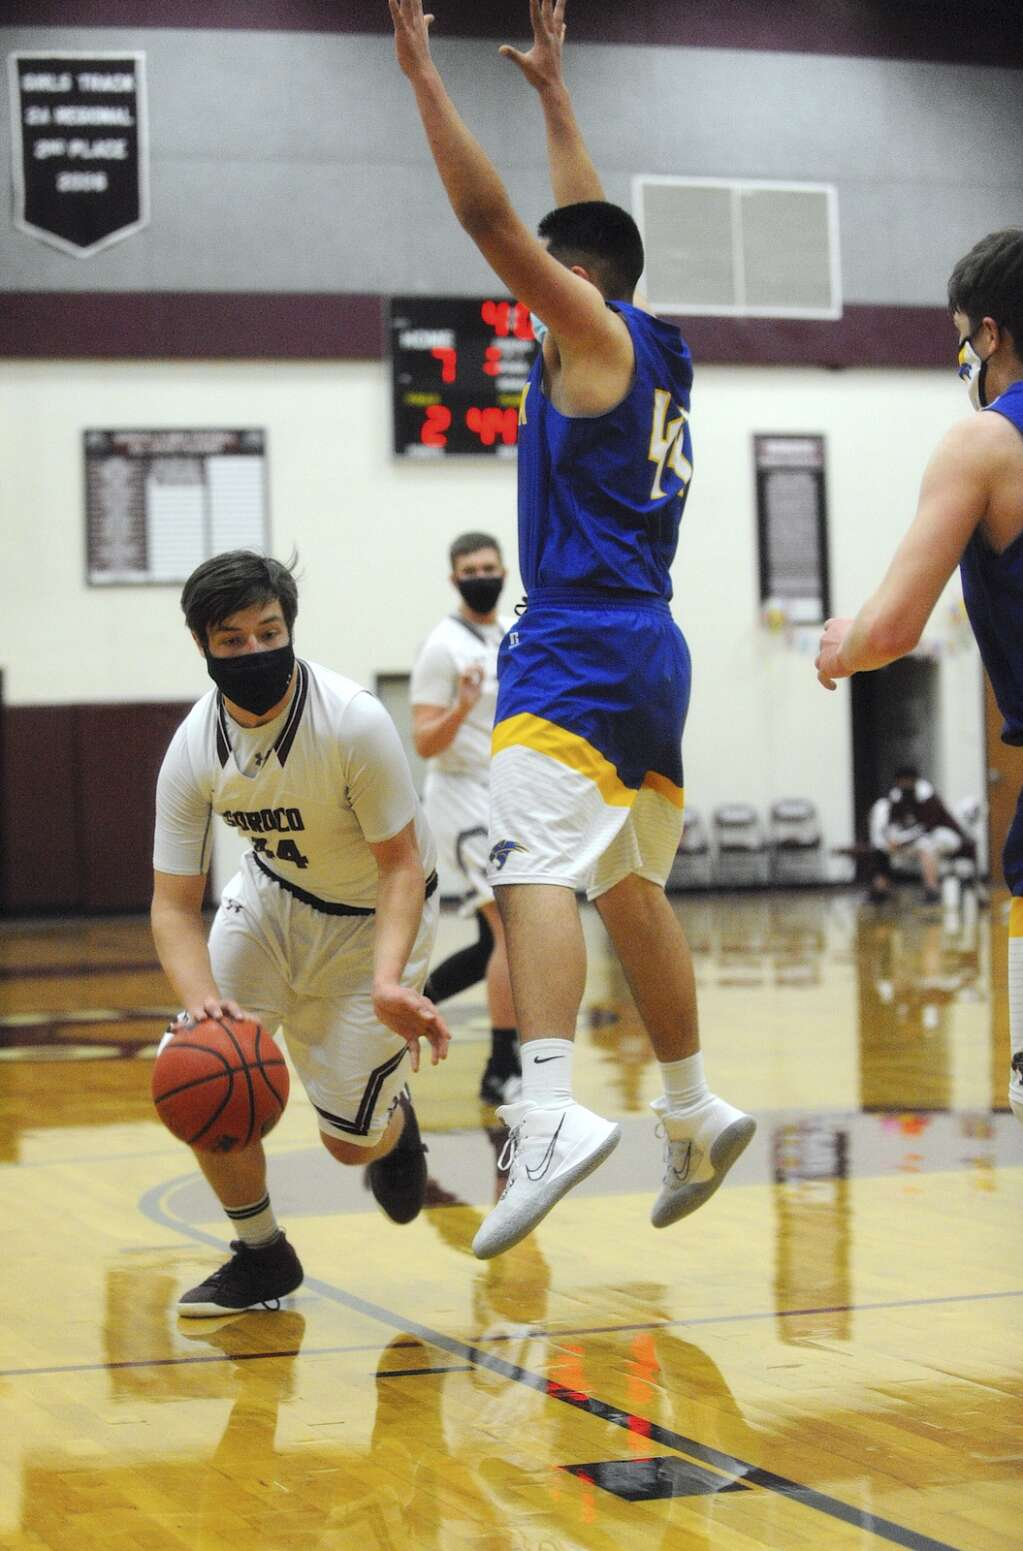 Soroco senior Chase Delamater dribbles around North Park sophomore Troy Gonzales during a game in Oak Creek on Saturday afternoon. (Photo by Shelby Reardon)